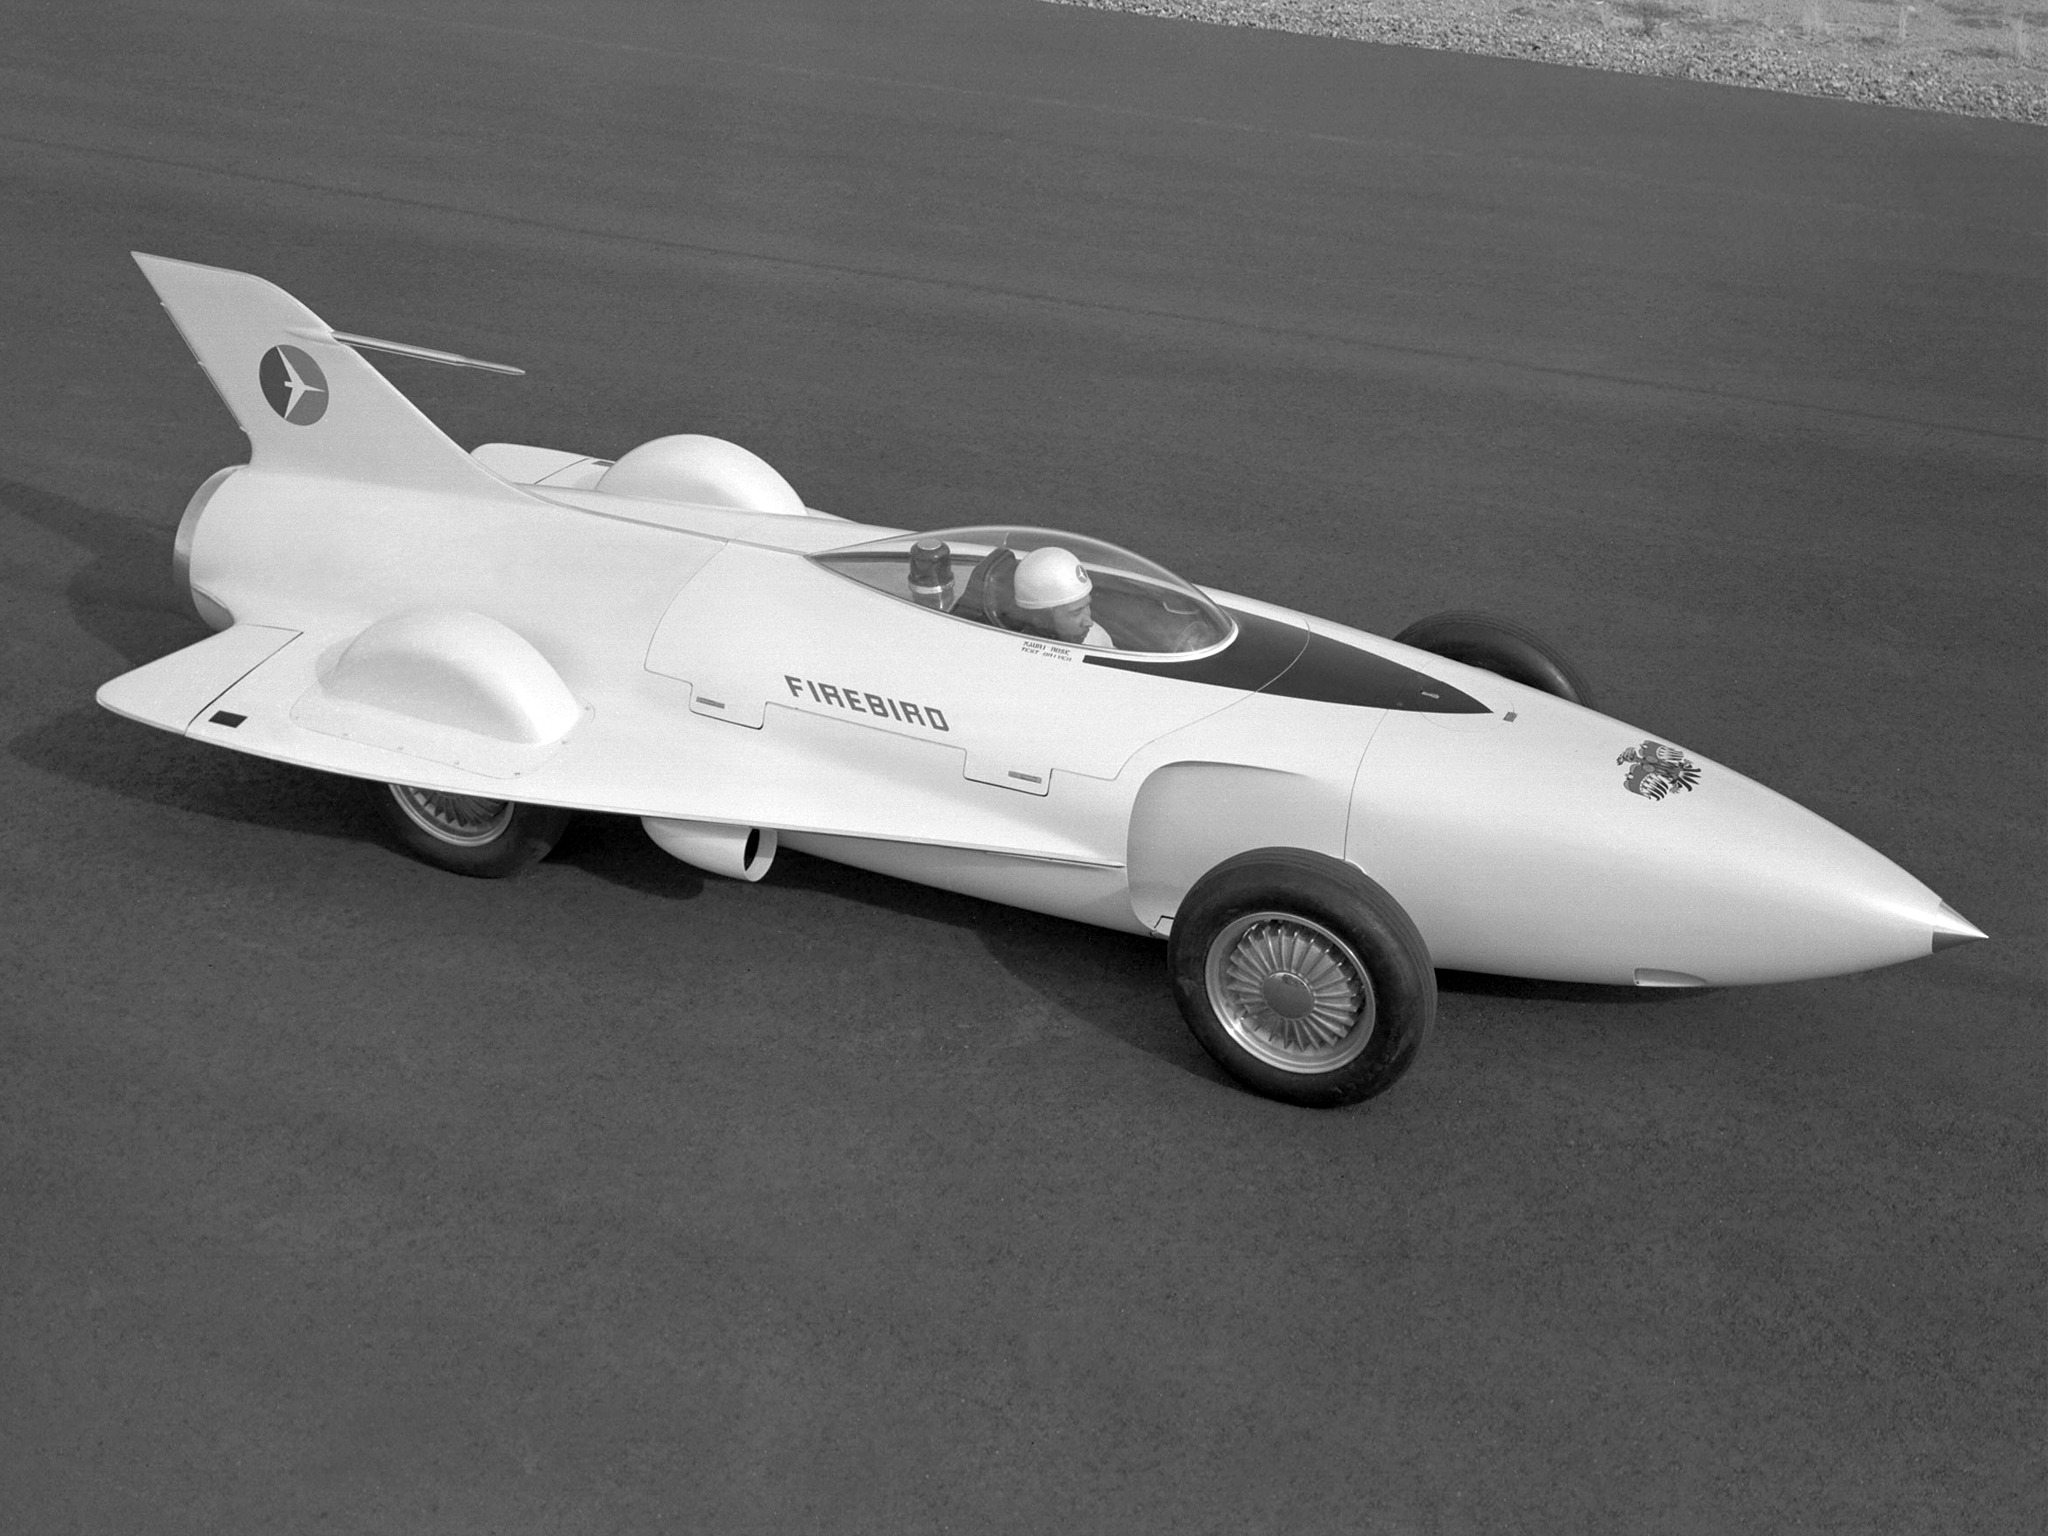 GM Firebird I Concept Car (1953) - Old Concept Cars